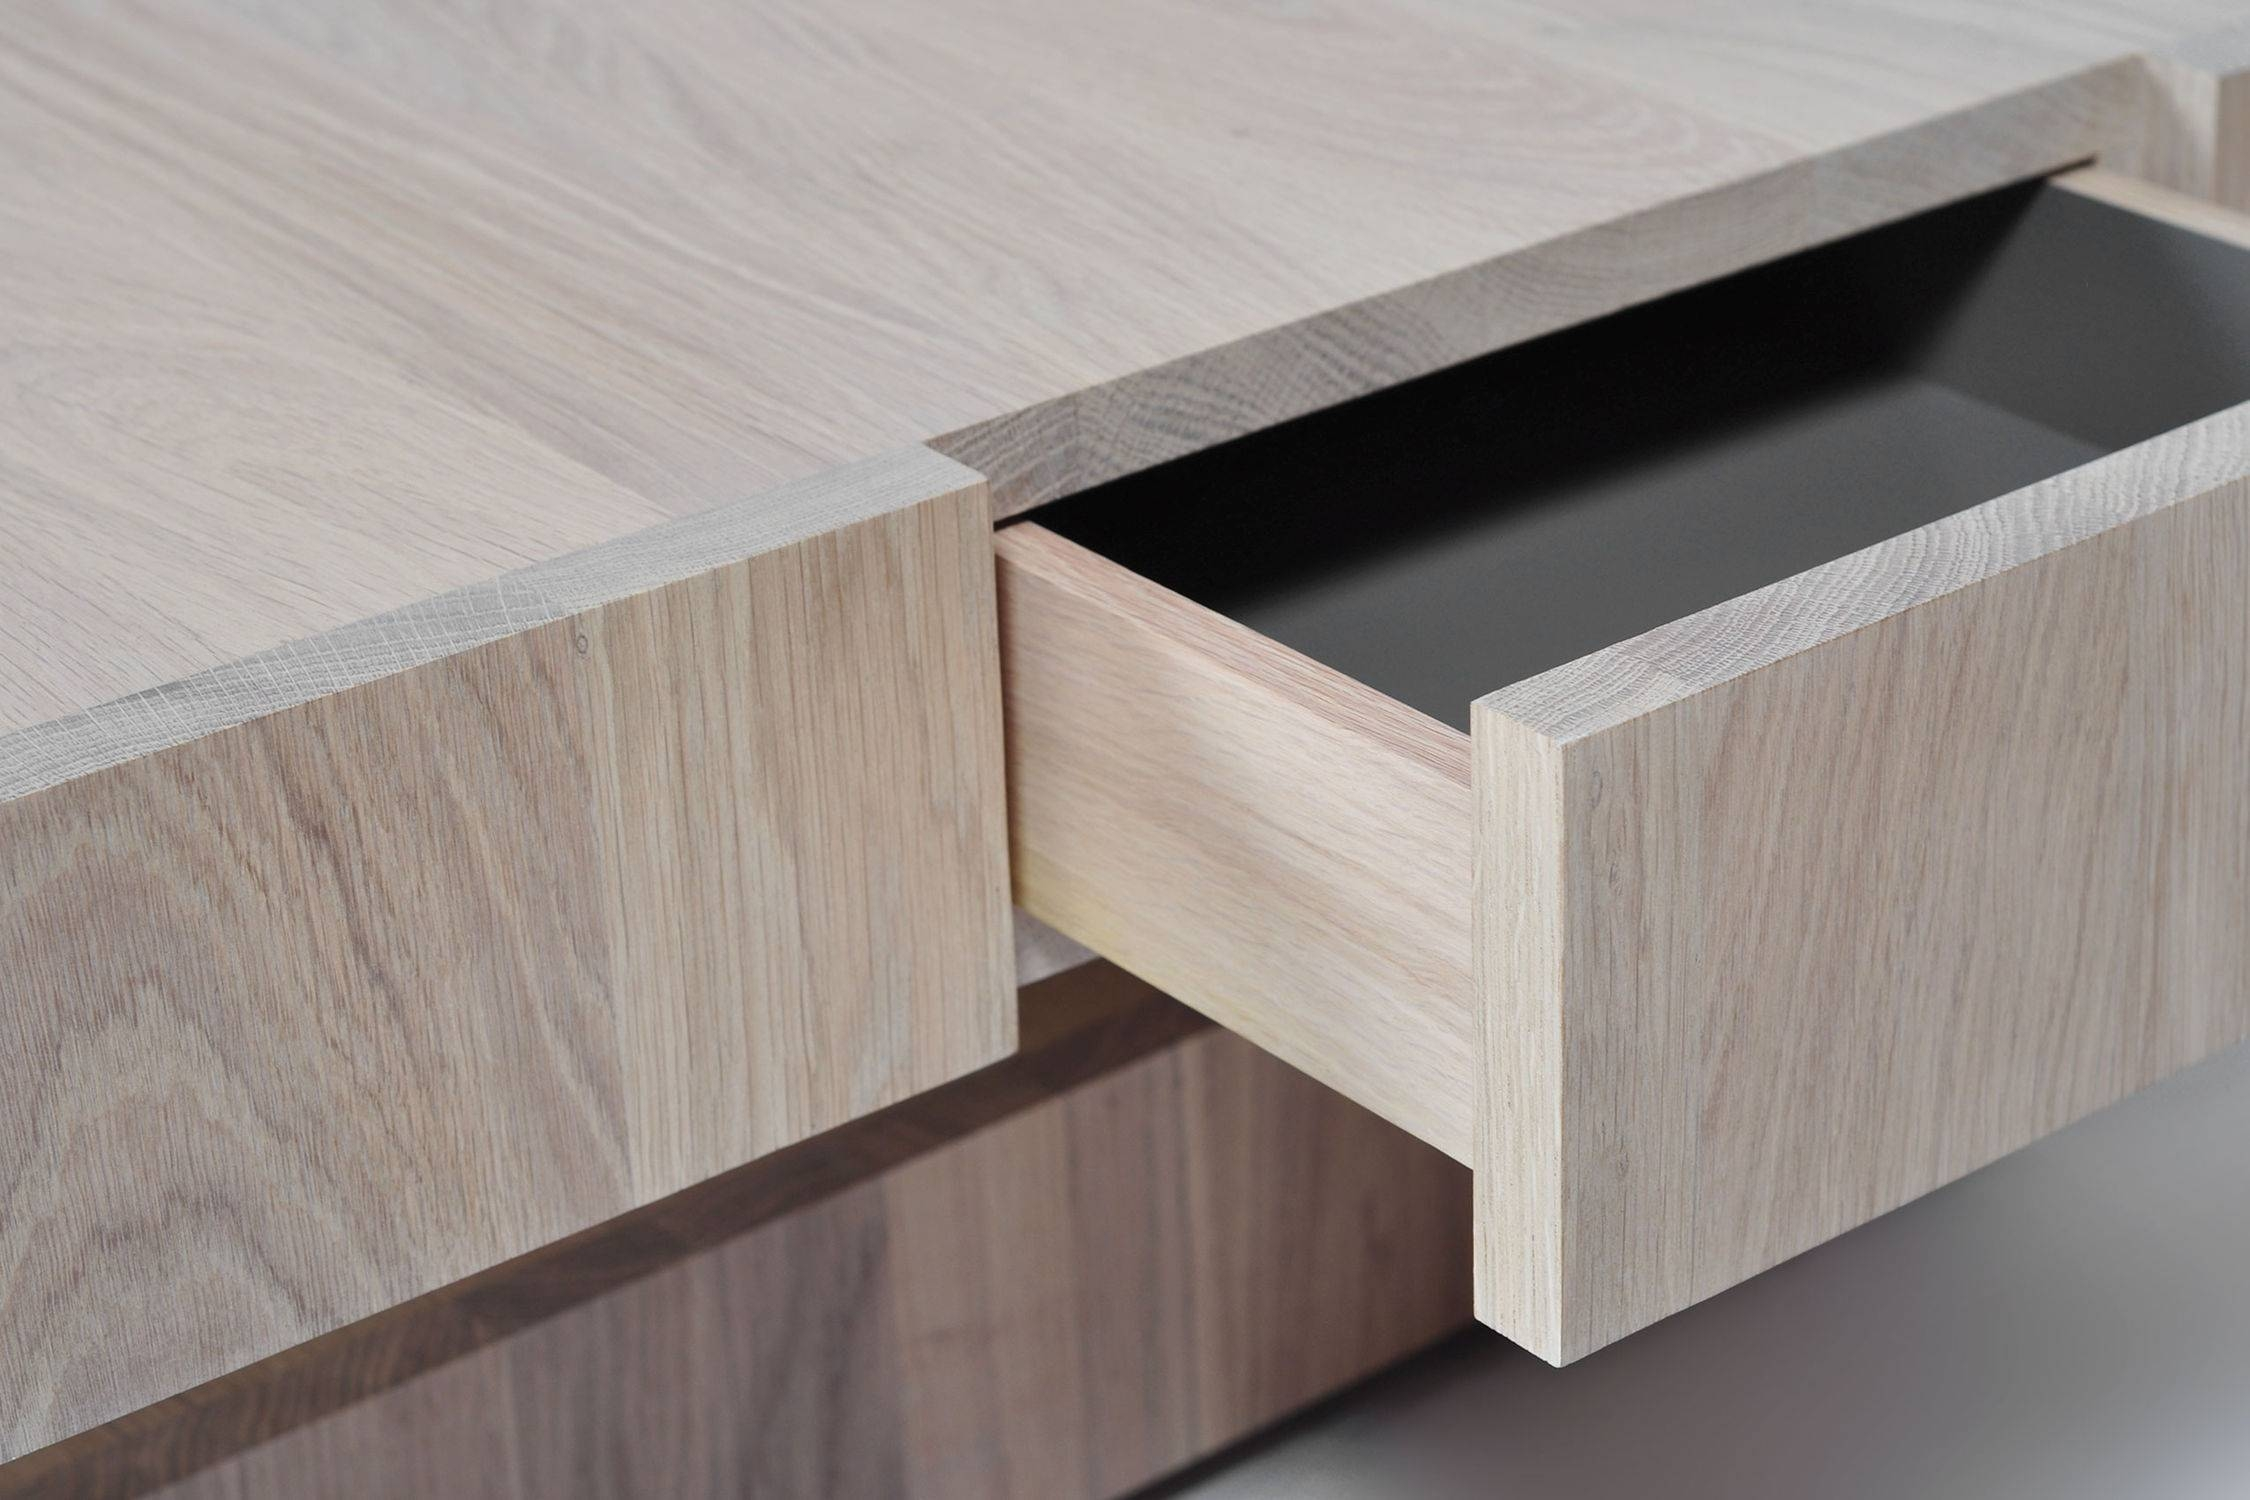 Contemporary Coffee Table / Oak / Square / With Storage with regard to Square Storage Coffee Tables (Image 15 of 30)